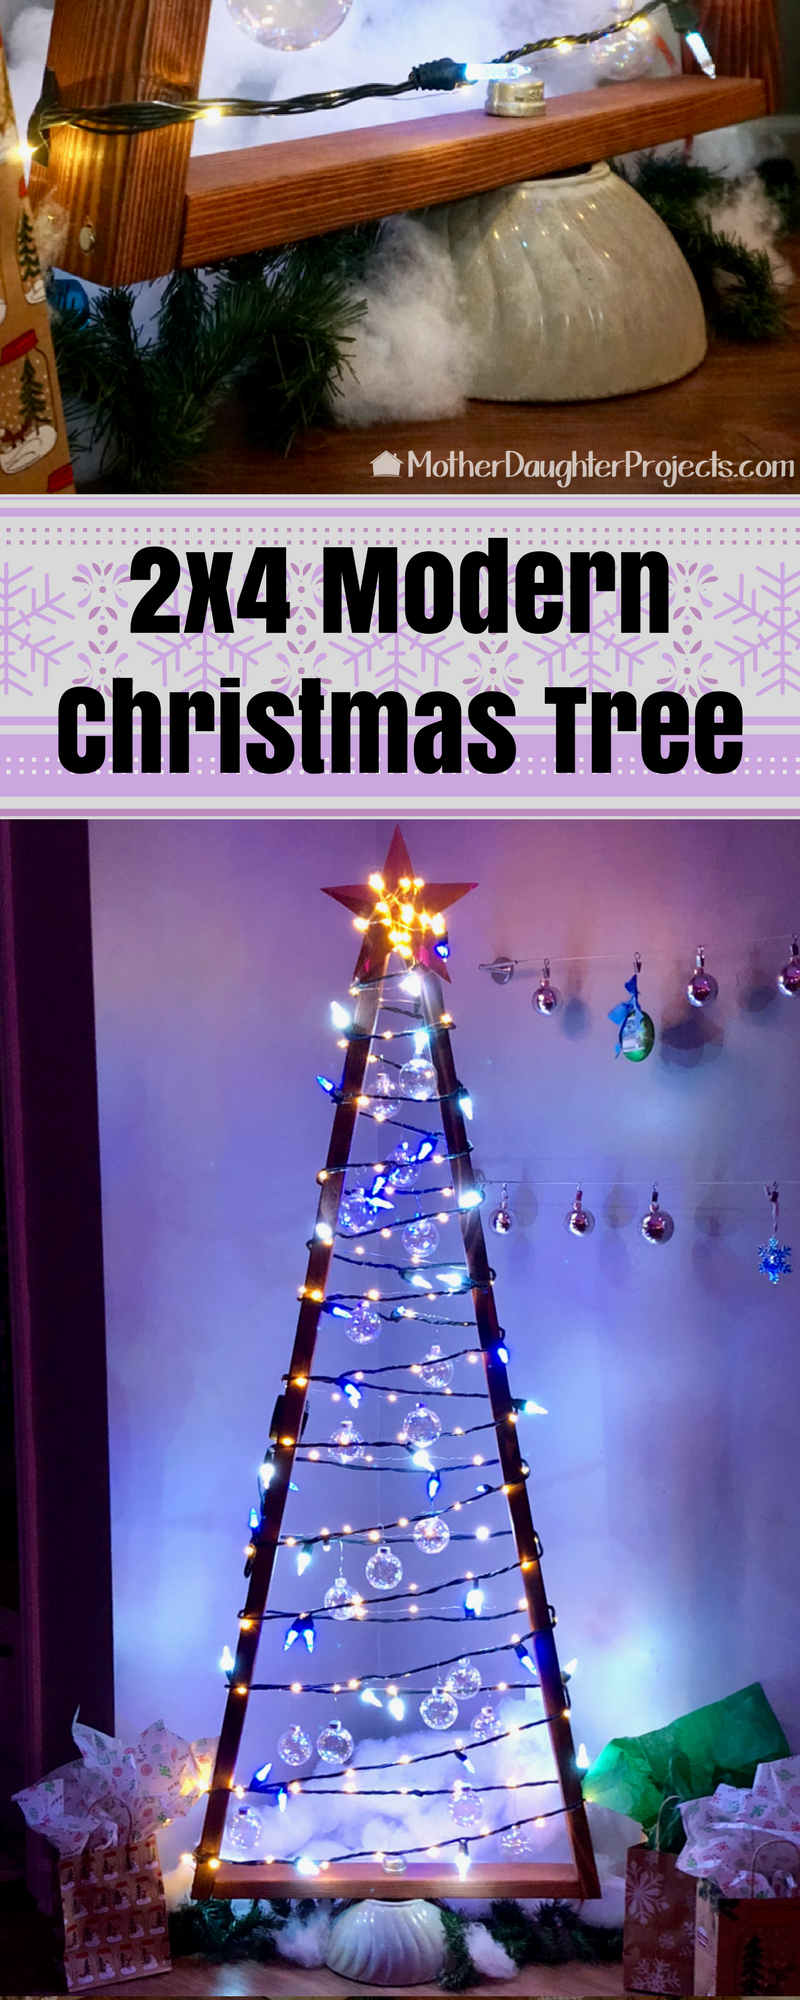 Learn how to use simple 2x4 wood to make this modern and rustic Christmas tree for the holidays. Great for smart Christmas lights, fairy lights and more! All complete with a quikete concrete base.